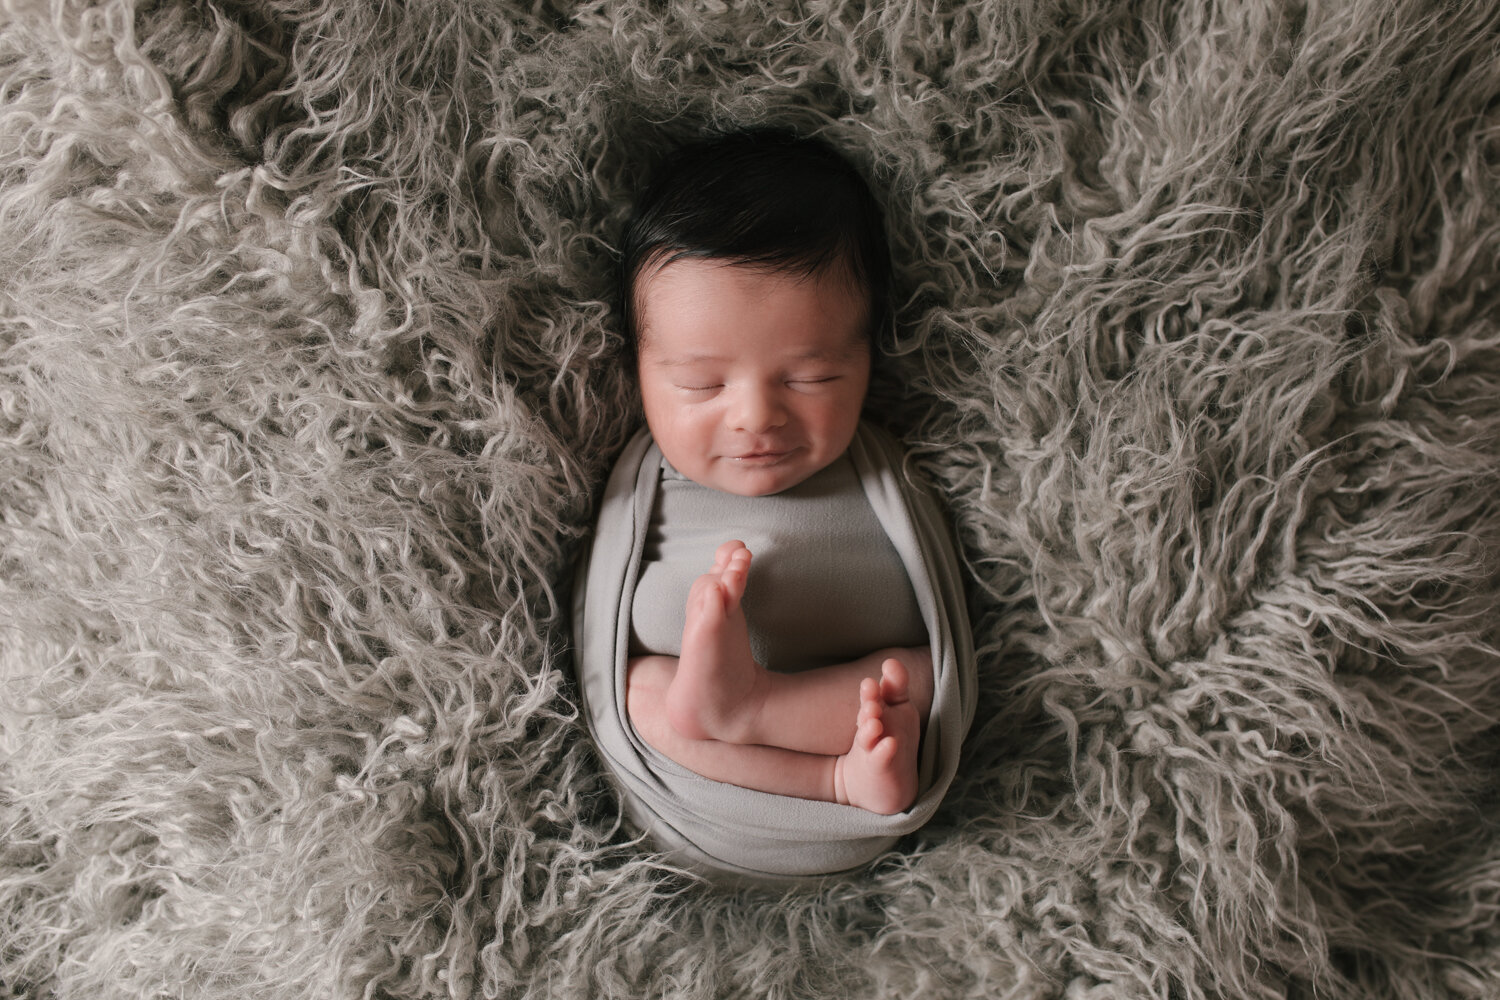 Simple_Minimalist_Newborn_Session_Mini_Newborn_Shoot_Inexpensive_Newborn_Photos_in_Boardman__ohio_with_Turkish_and_Romanian_Baby_Baby_Boy_Cream_and_Gray_Baby_Pictures_by_Newborn_Photographer_Christie_Leigh_Photo_in_Farmdale_OH-18.JPG